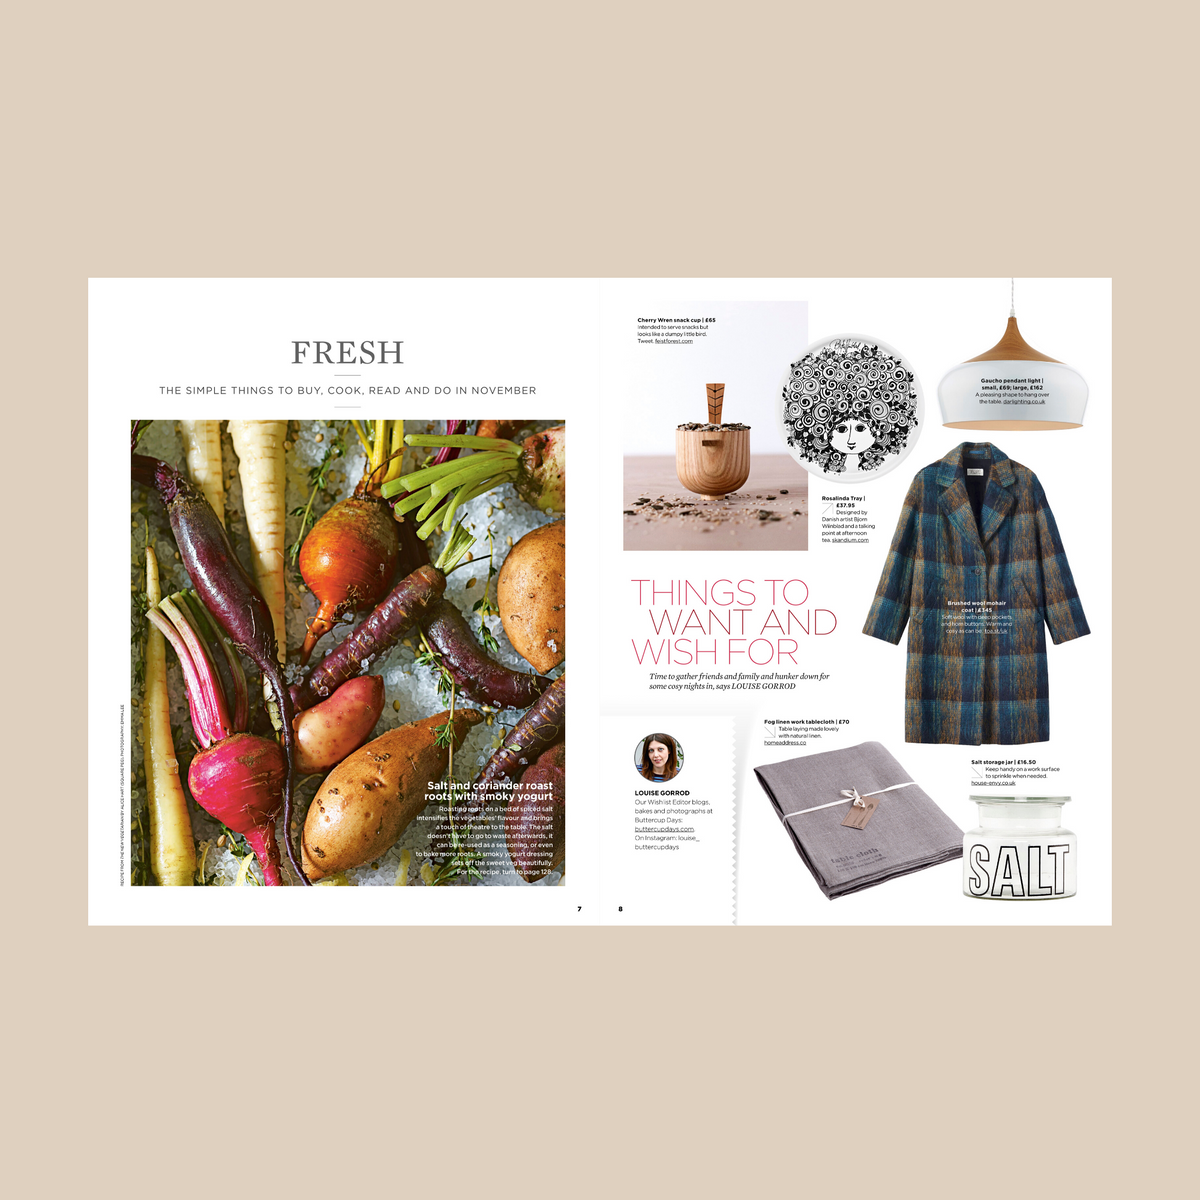 The Simple Things Issue 53